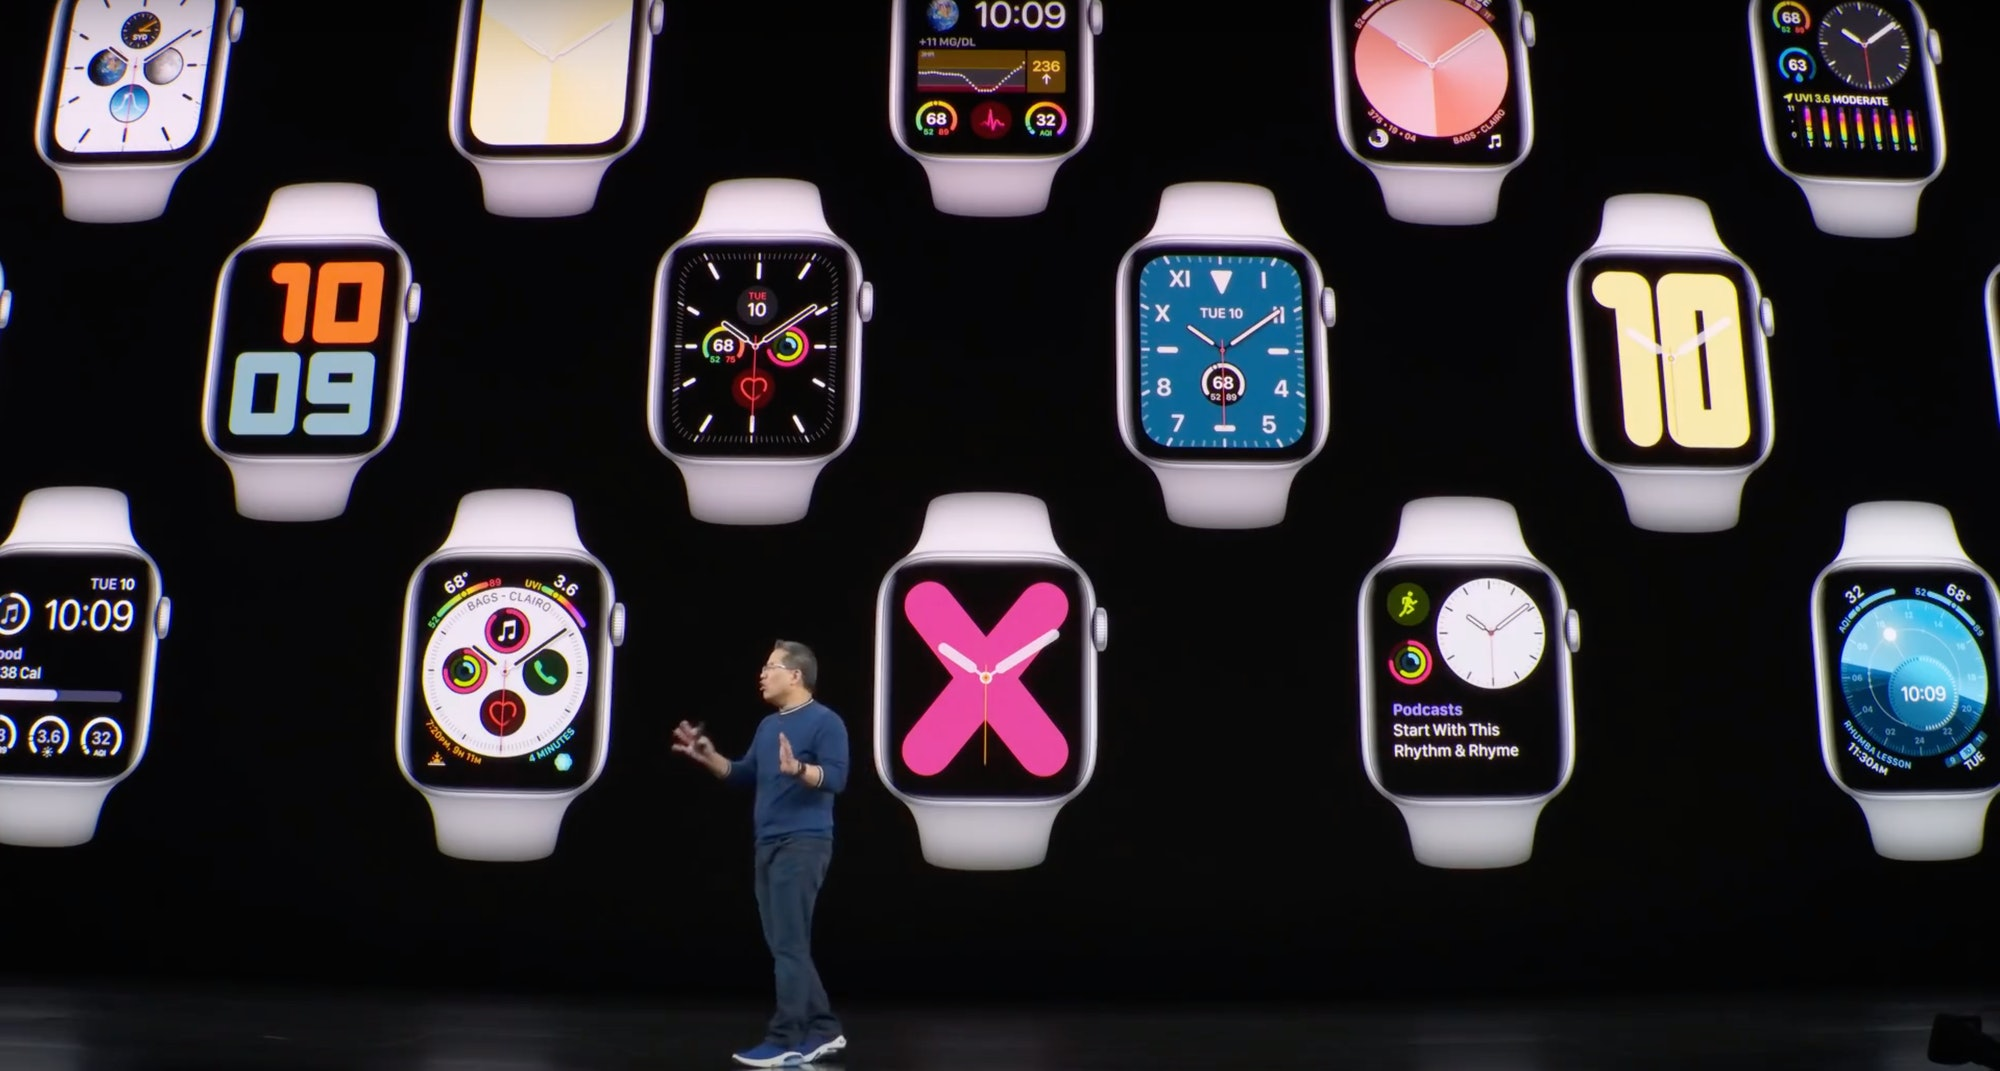 The watch faces in their active state.